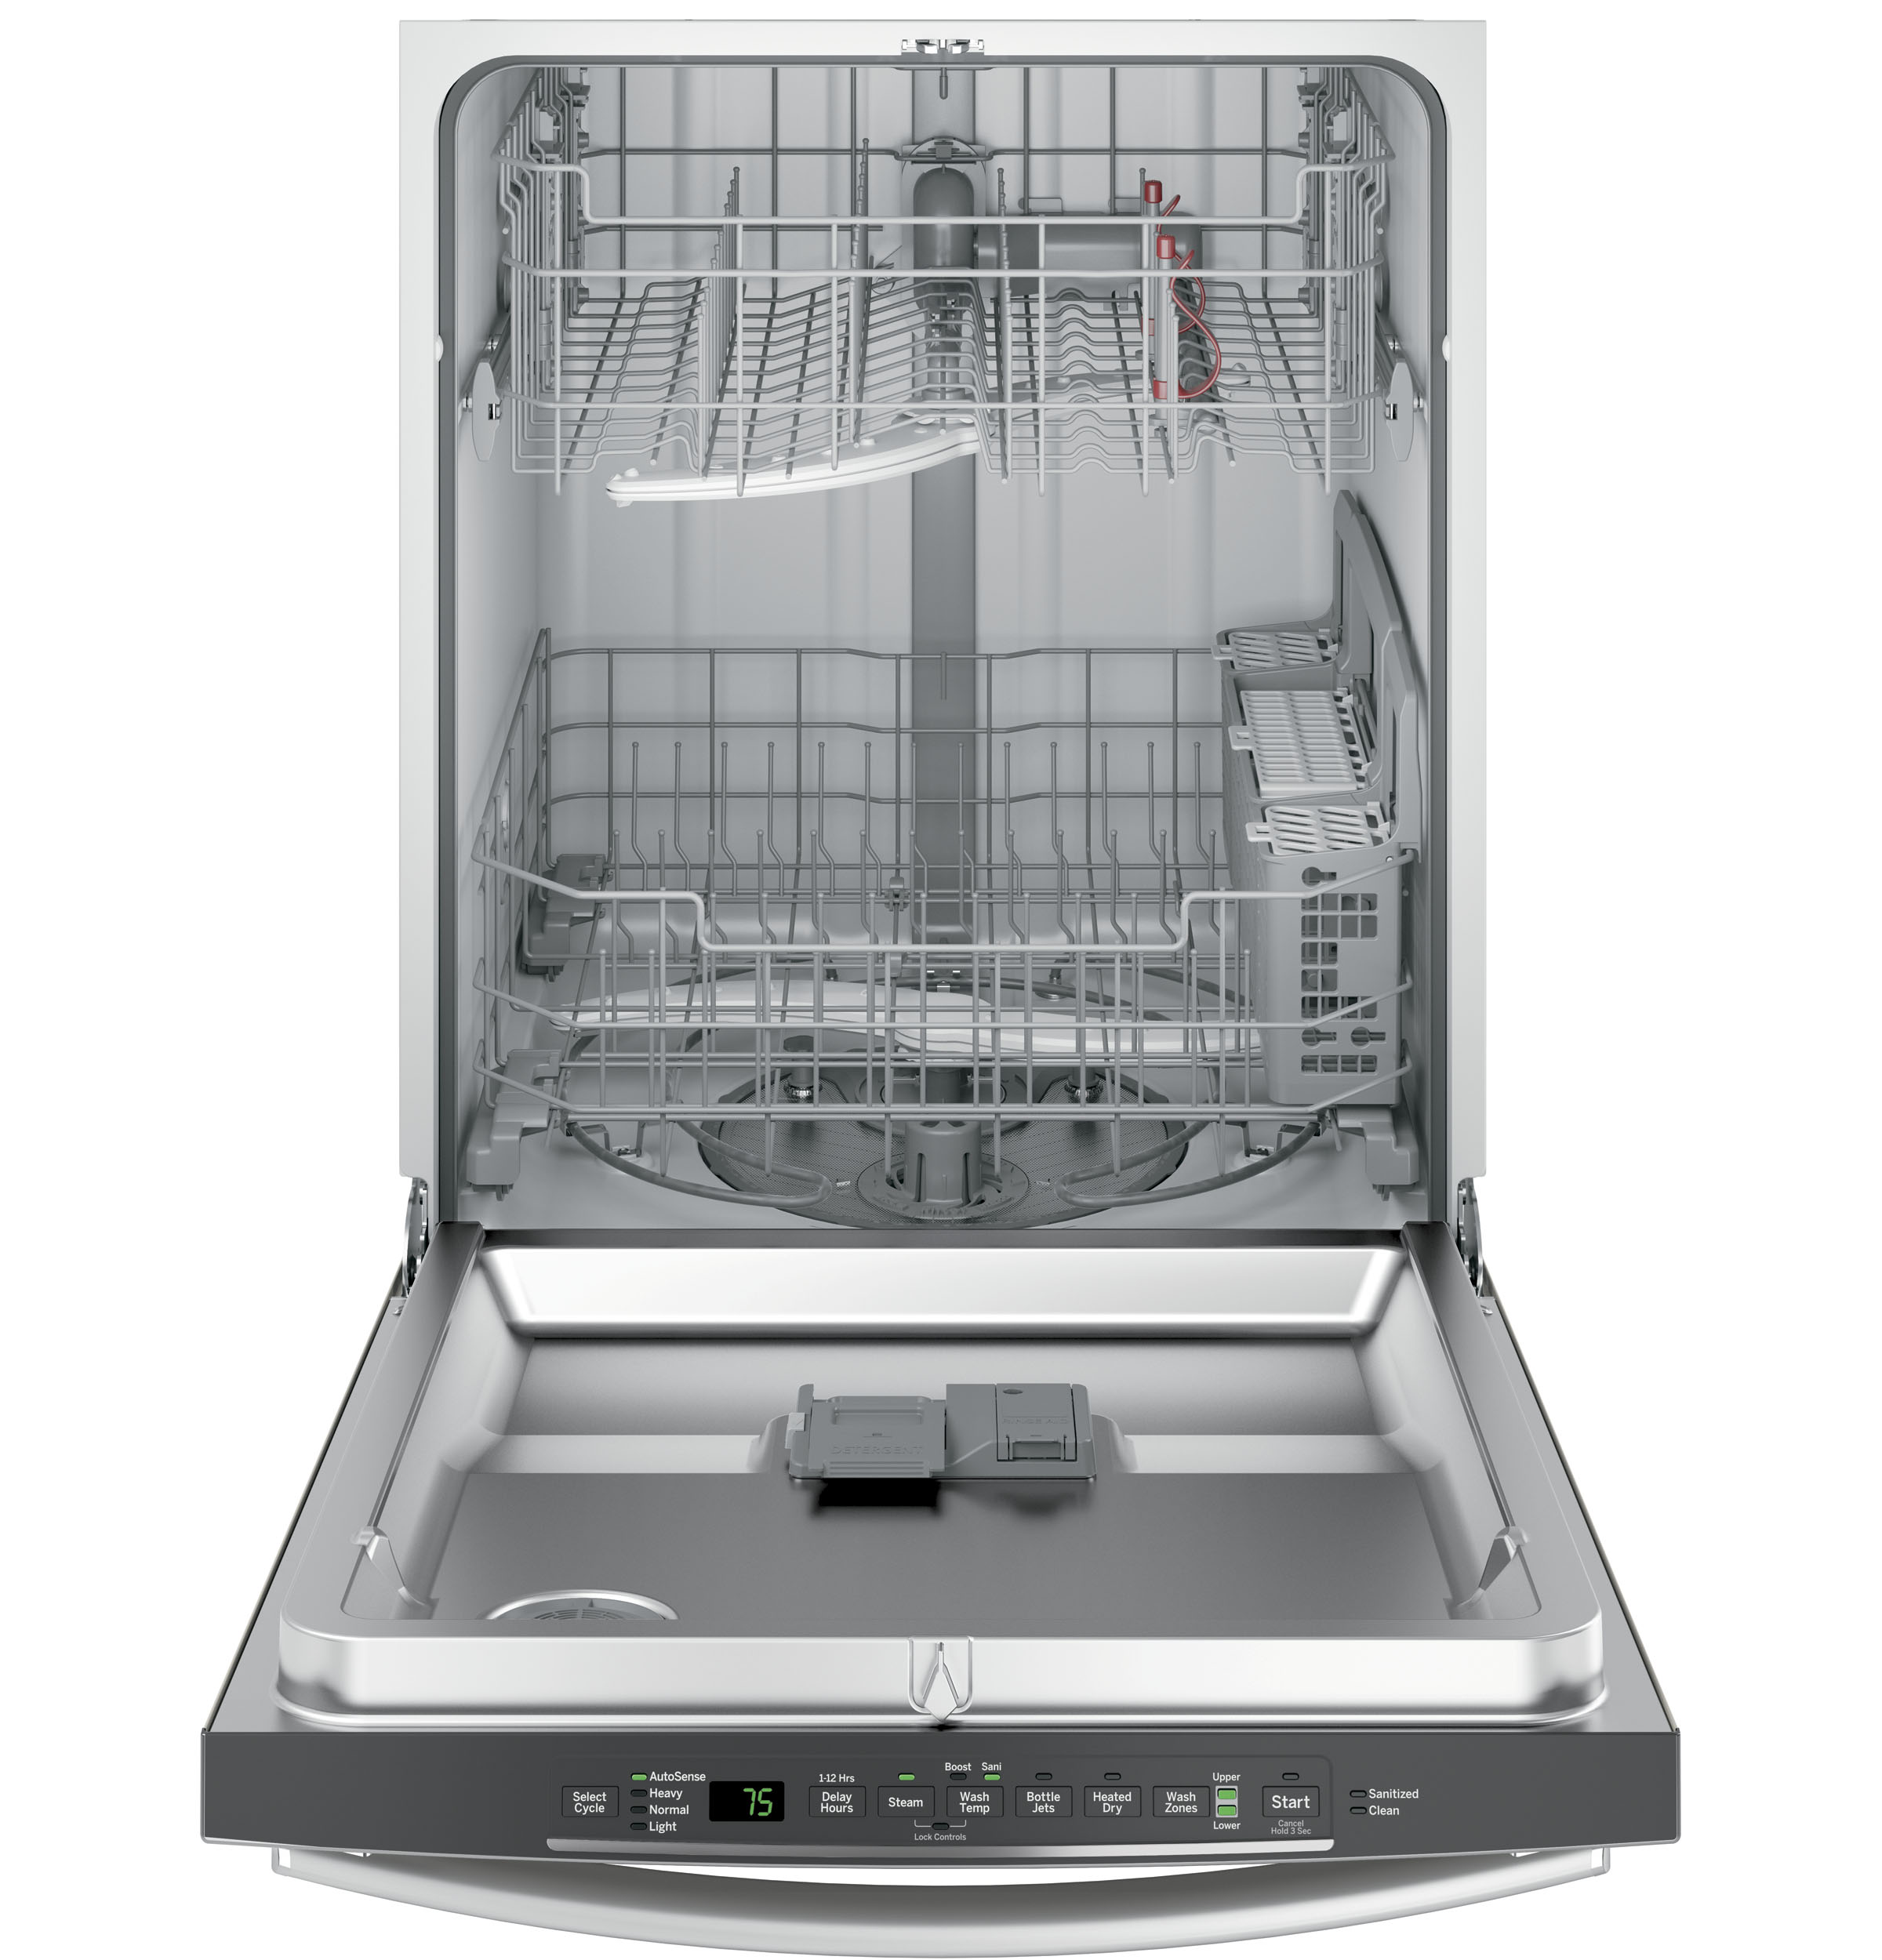 How To Clean The Inside Of A Stainless Steel Dishwasher Gear Hybrid Stainless Steel Interior Dishwasher With Hidden